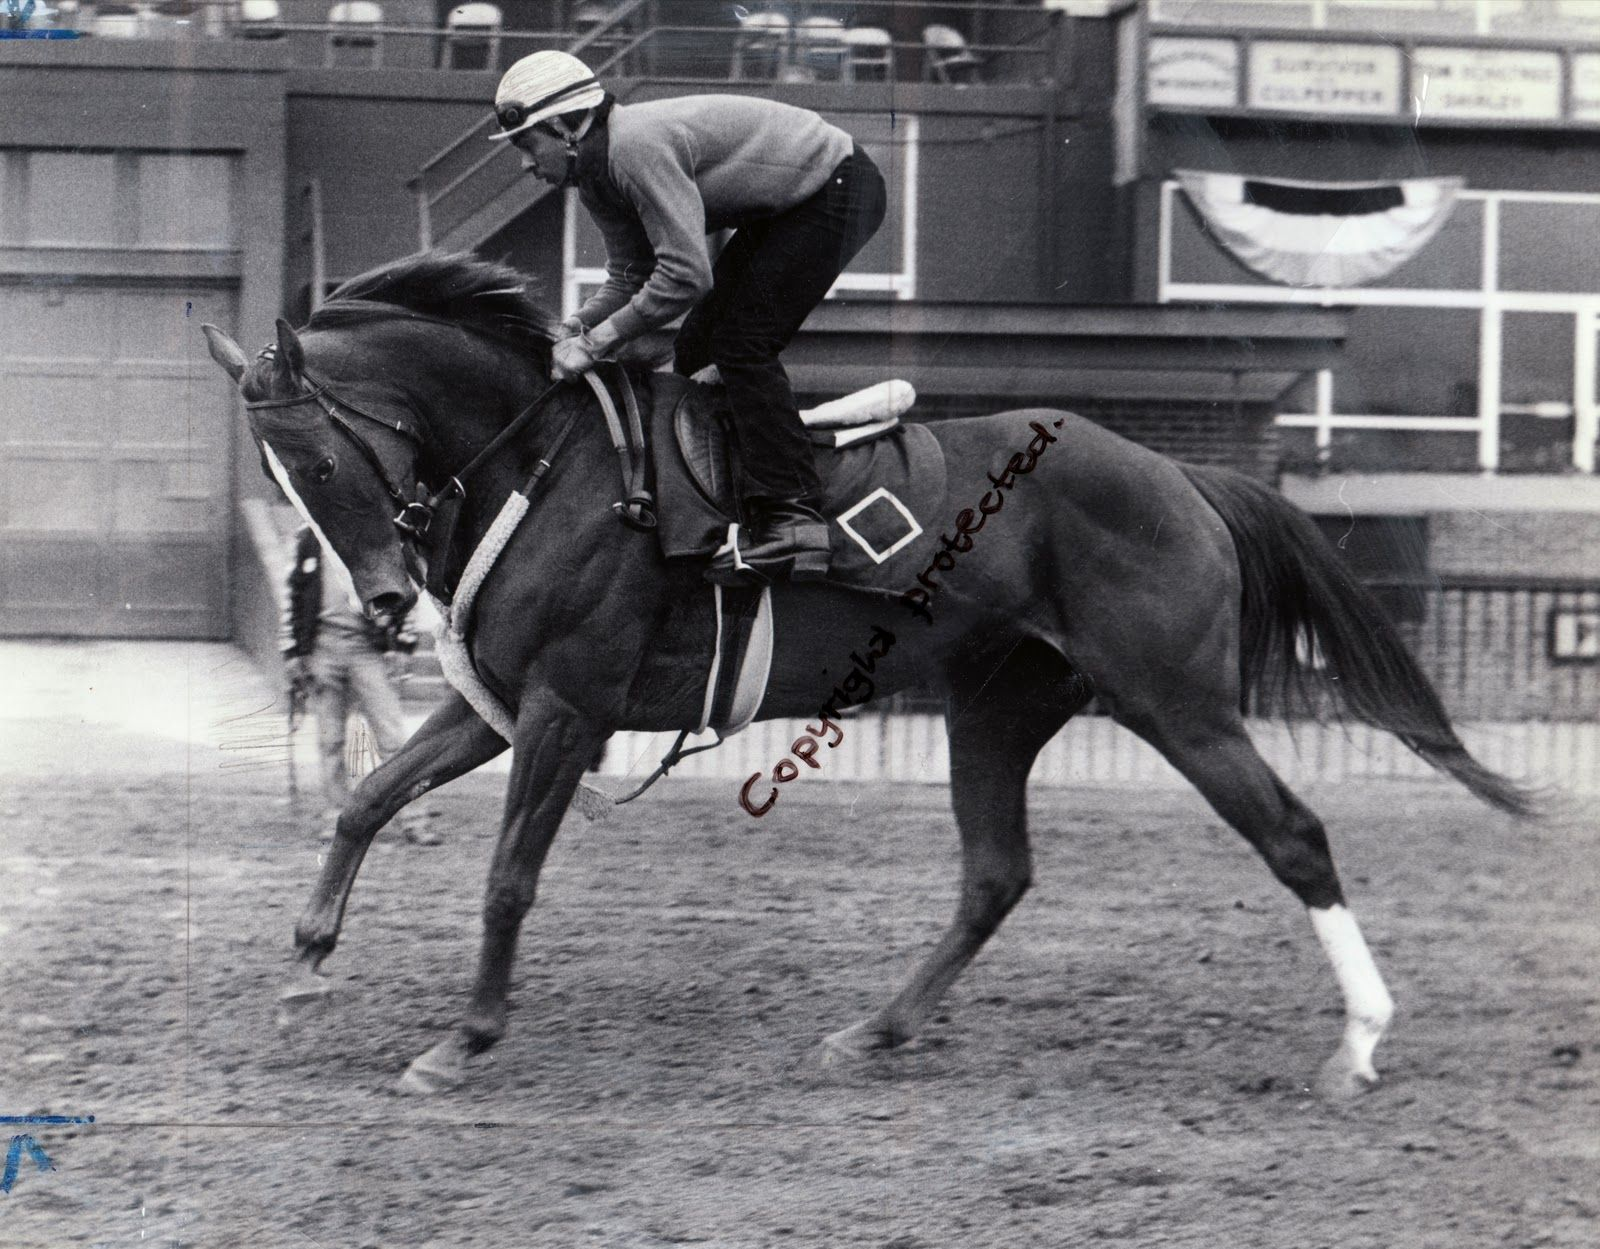 The Power And Beauty Of Genuine Risk Filly Who Won 1980 Kentucky Derby Shown Here In With Her Regular Exercise Rider Luis Hortez